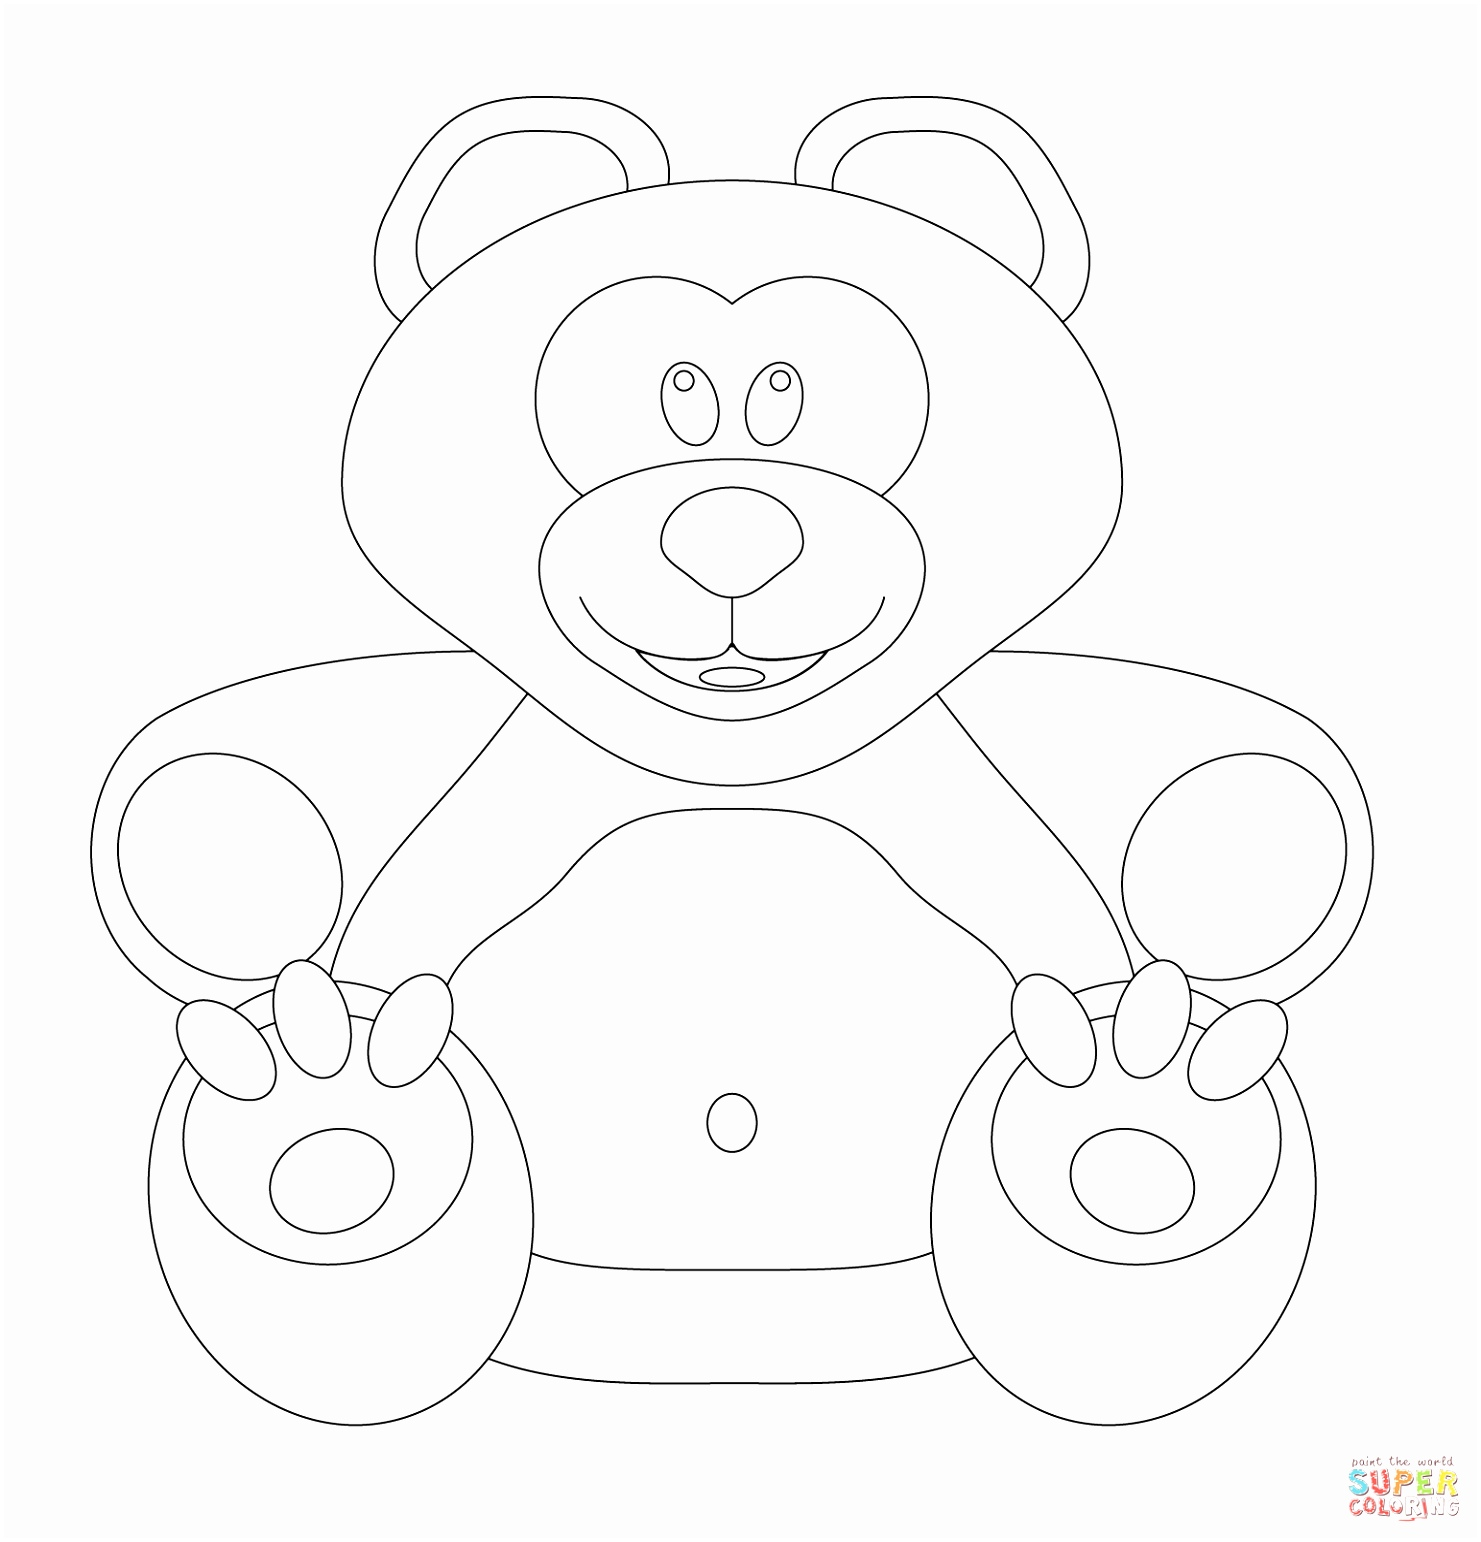 pudsey bear colouring pictures to print rock and roll and pudsey crafts children in need pictures colouring print pudsey to bear